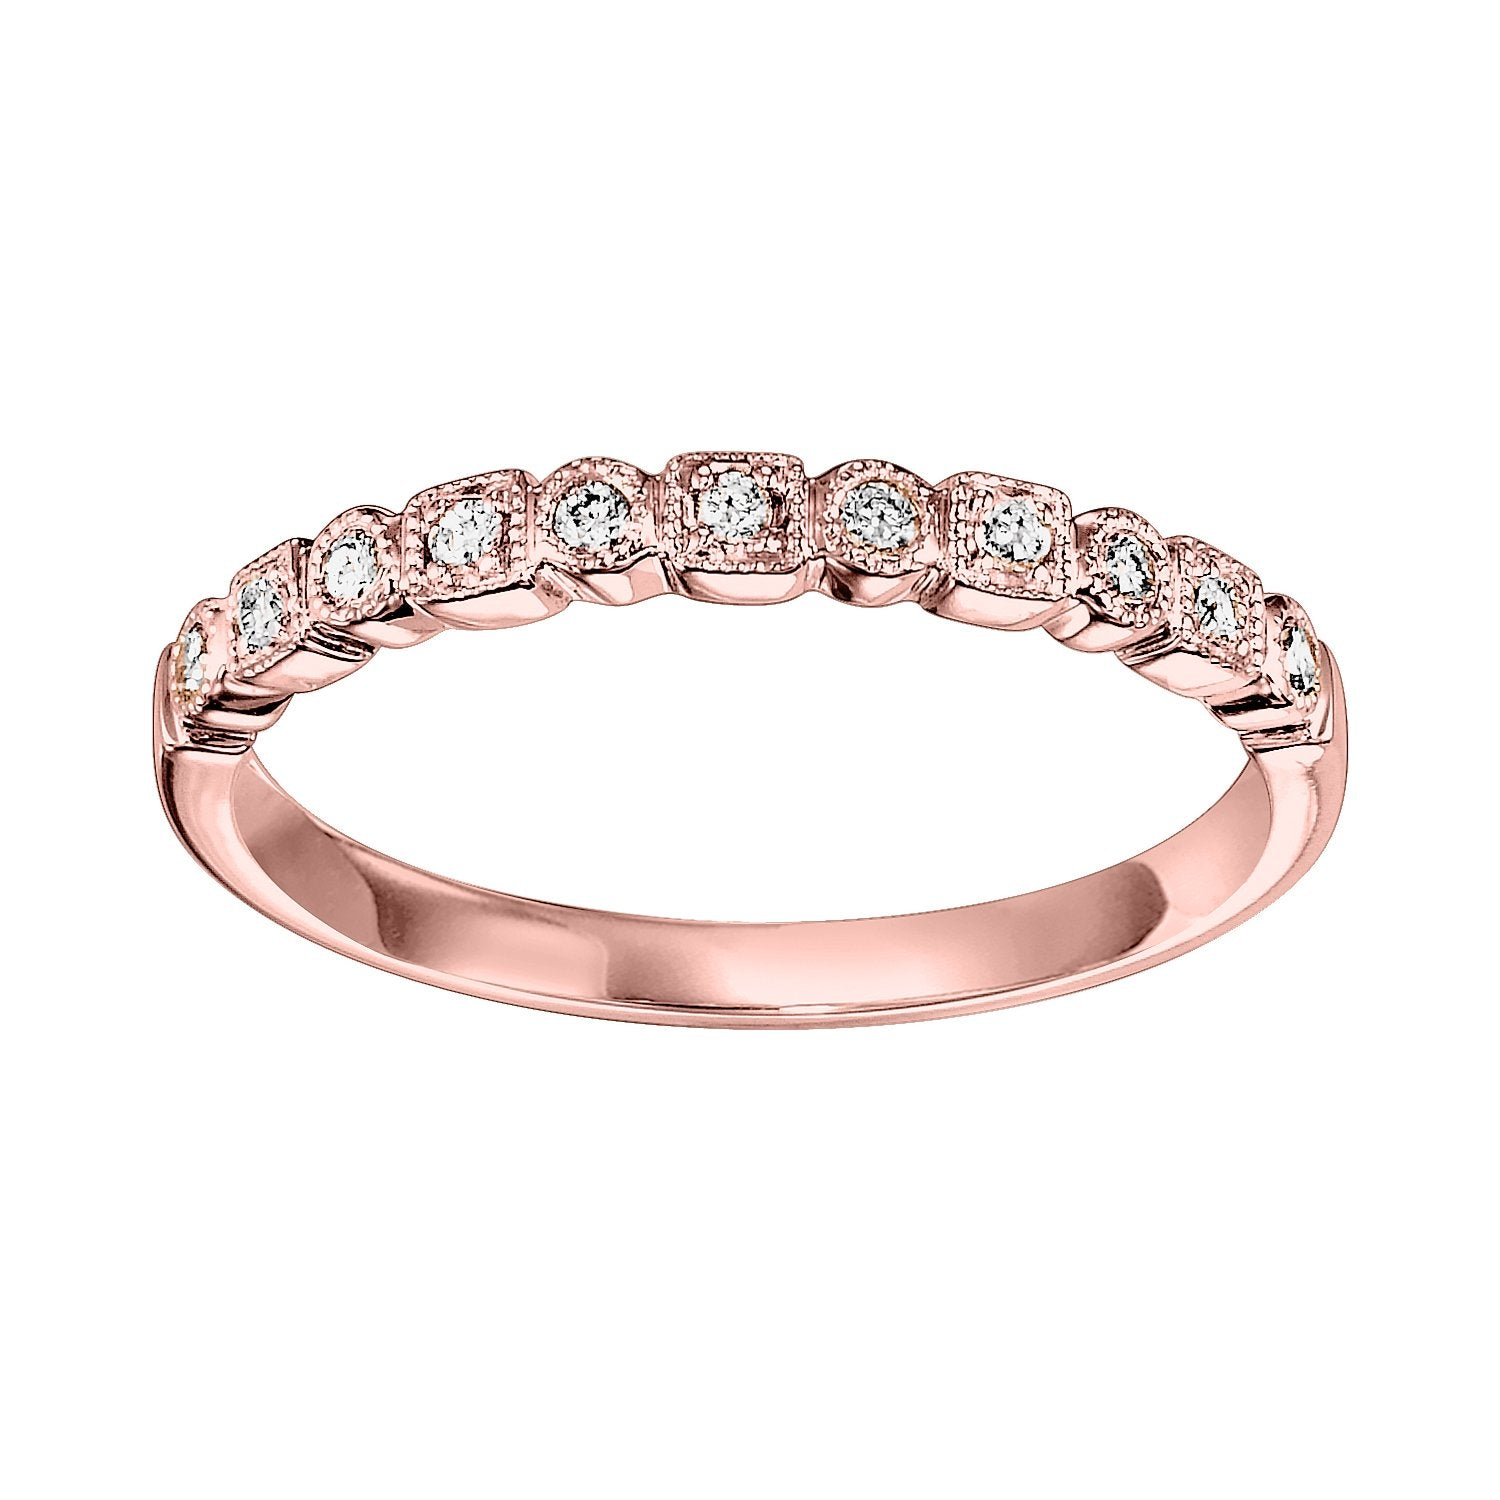 14K Rose Gold Mixable Ring